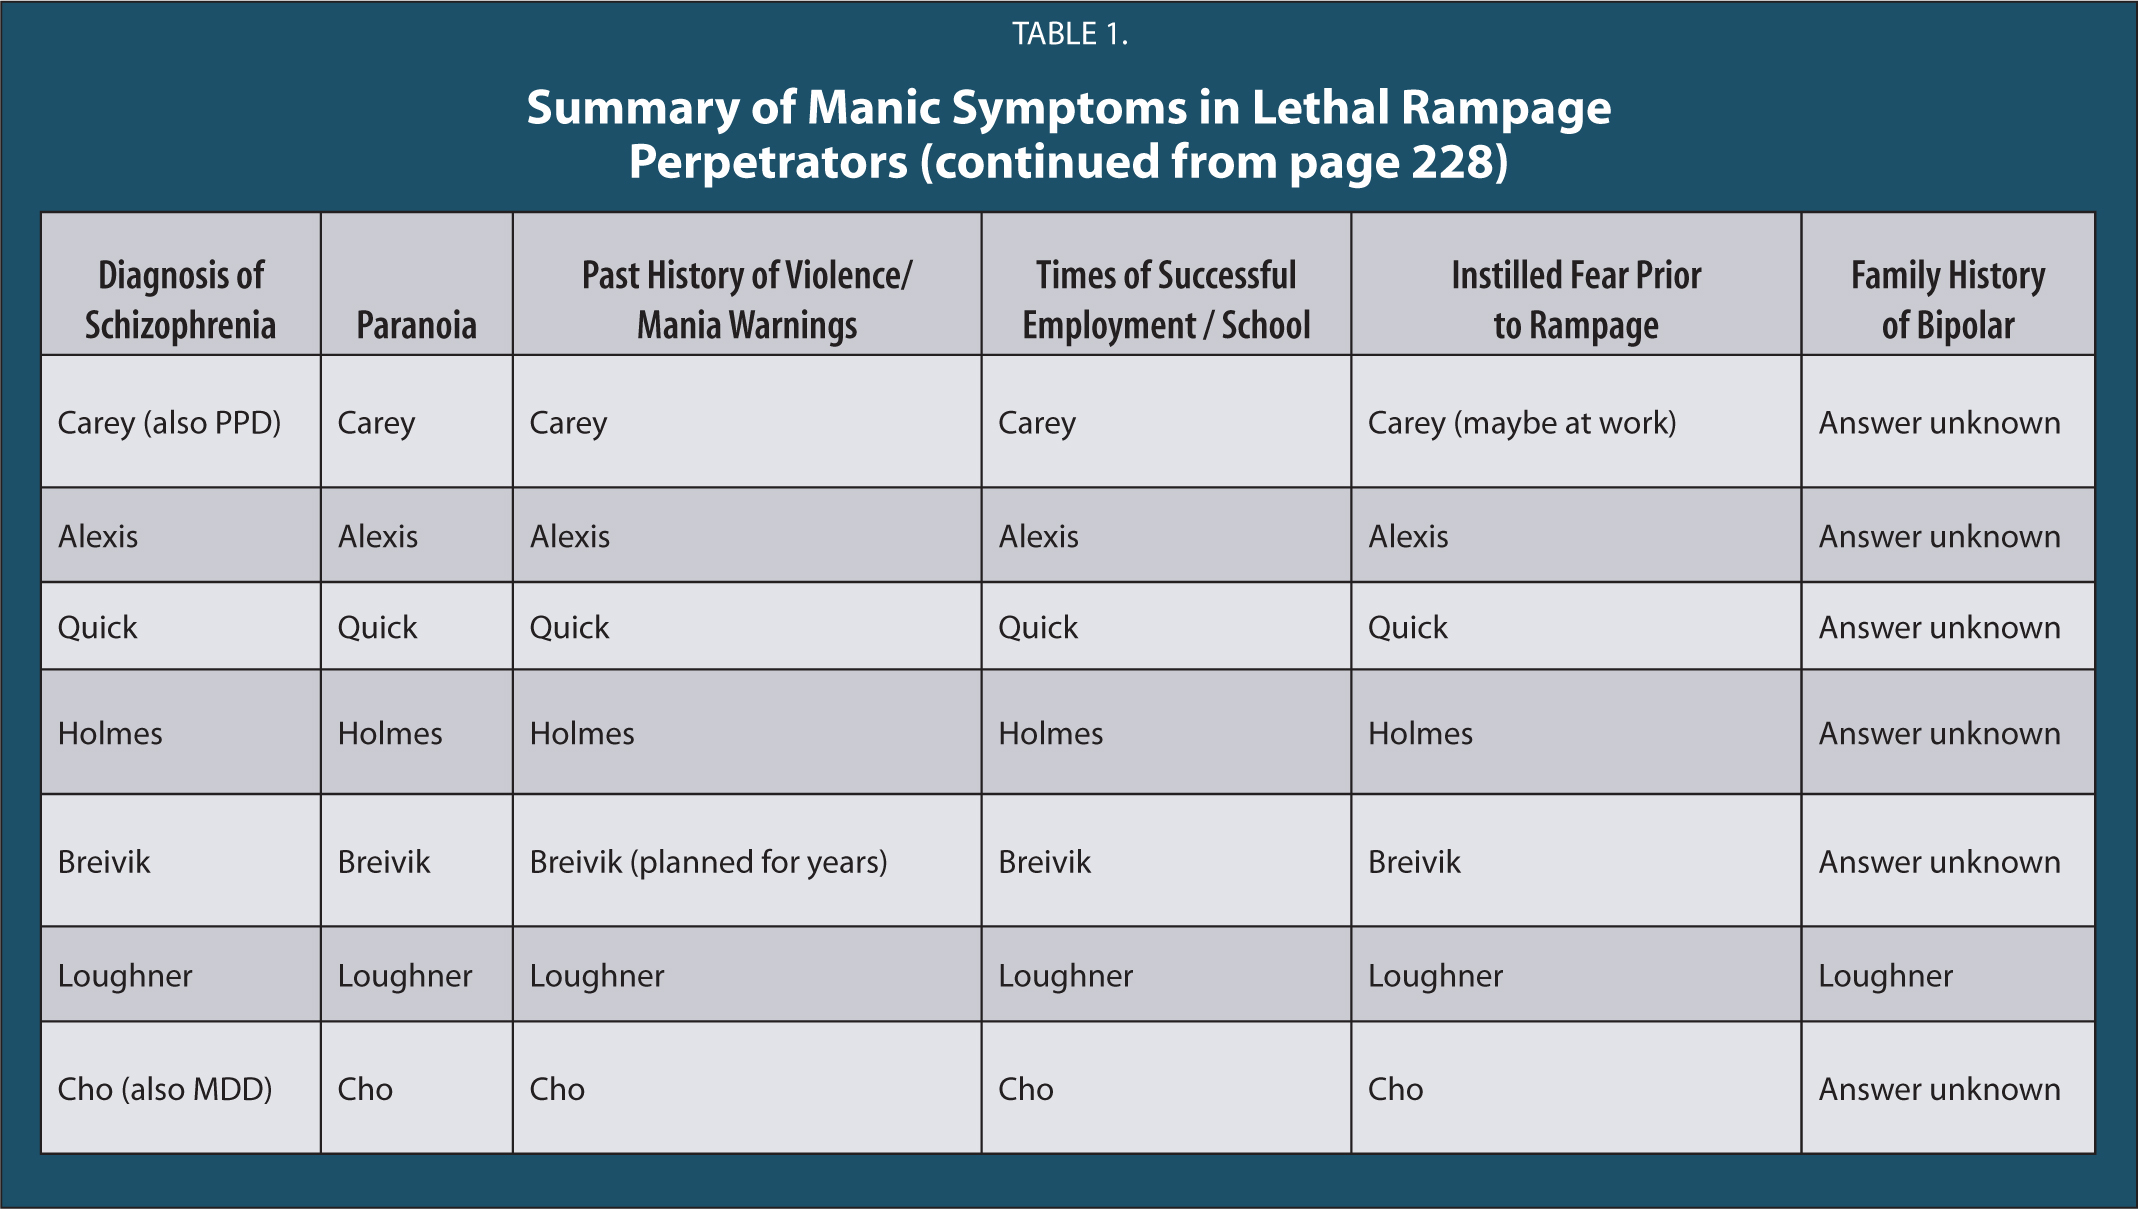 Summary of Manic Symptoms in Lethal Rampage Perpetrators